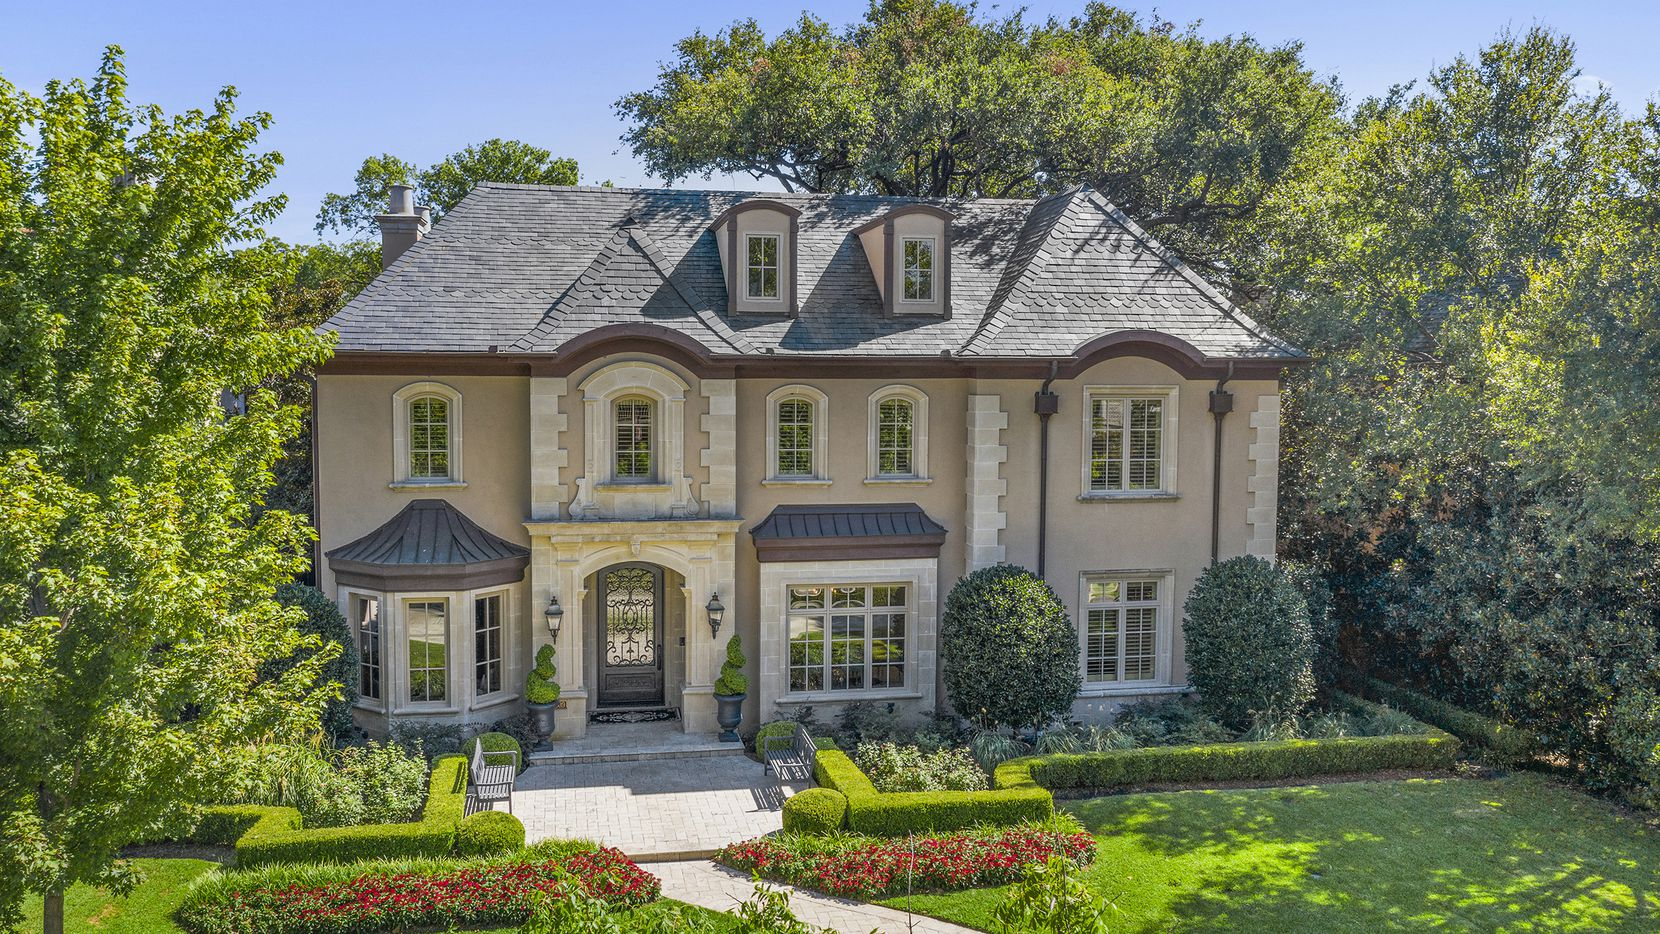 The updated French-style home at 3909 Centenary Ave. in University Park will be held open from 1 to 3 p.m. on Sept. 20.